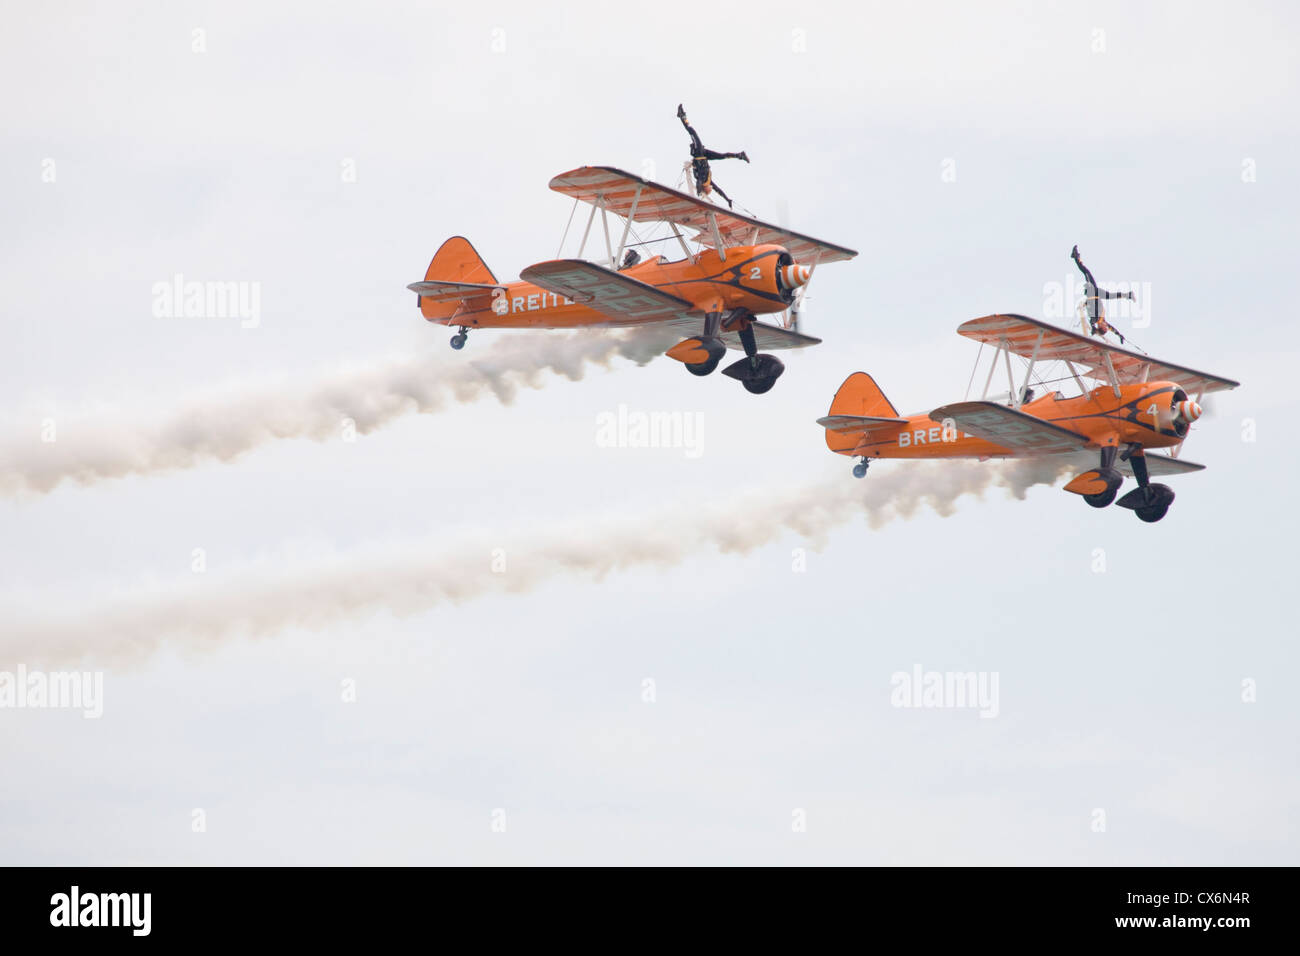 Wingwalking display team at the Bournemouth airshow 2012 - Stock Image